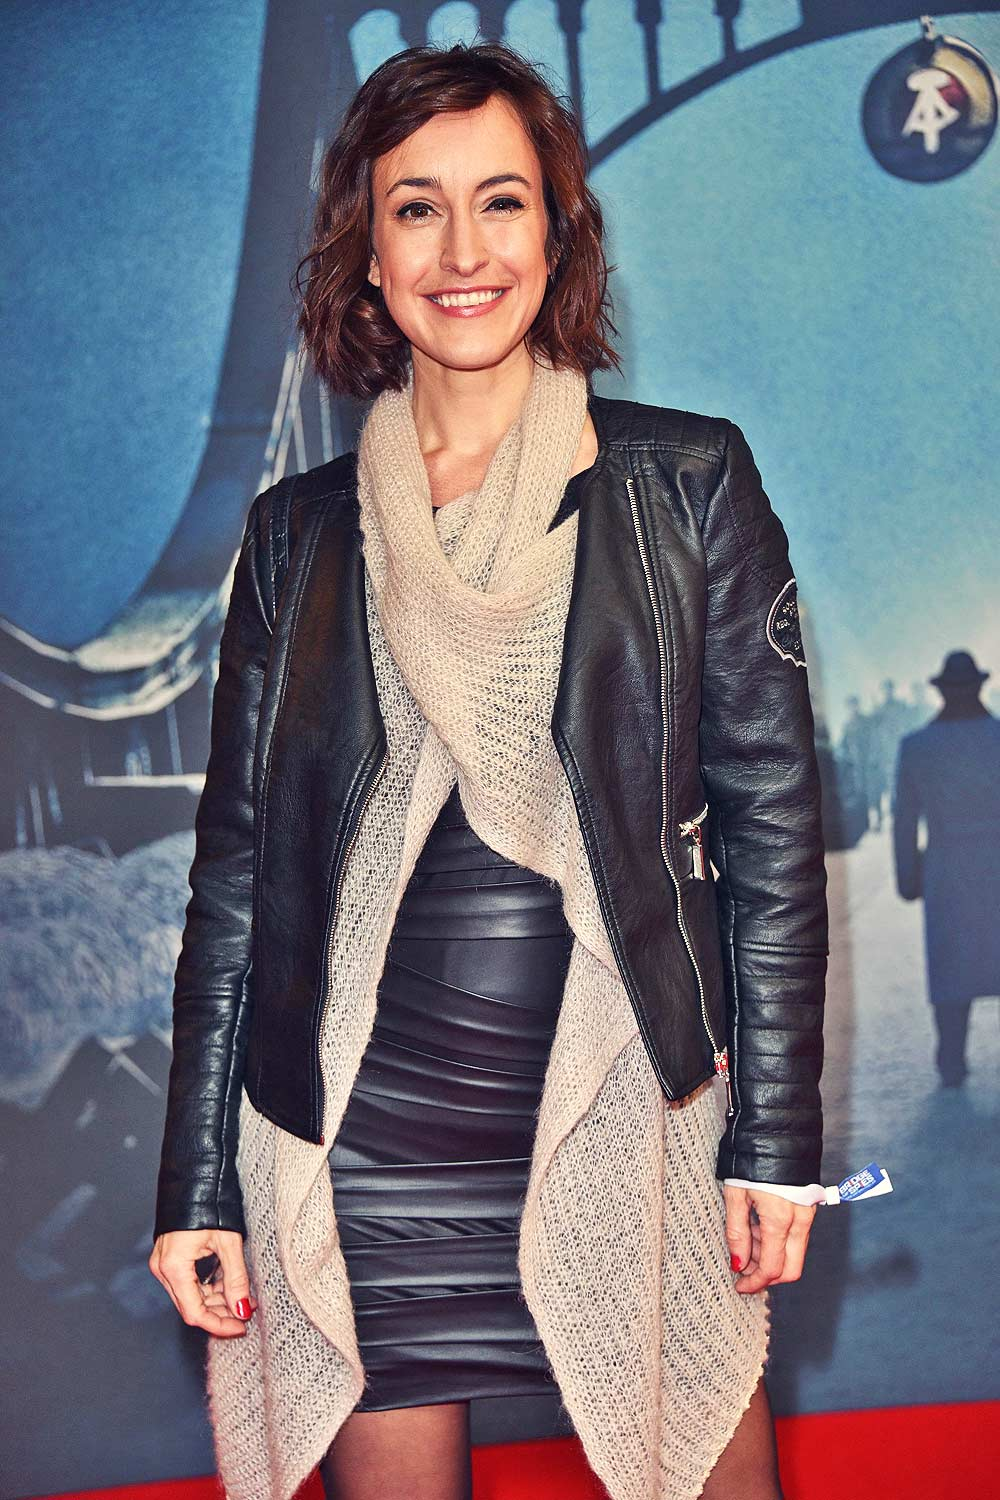 Maike von Bremen attends The Berlin premiere of Bridge of Spies